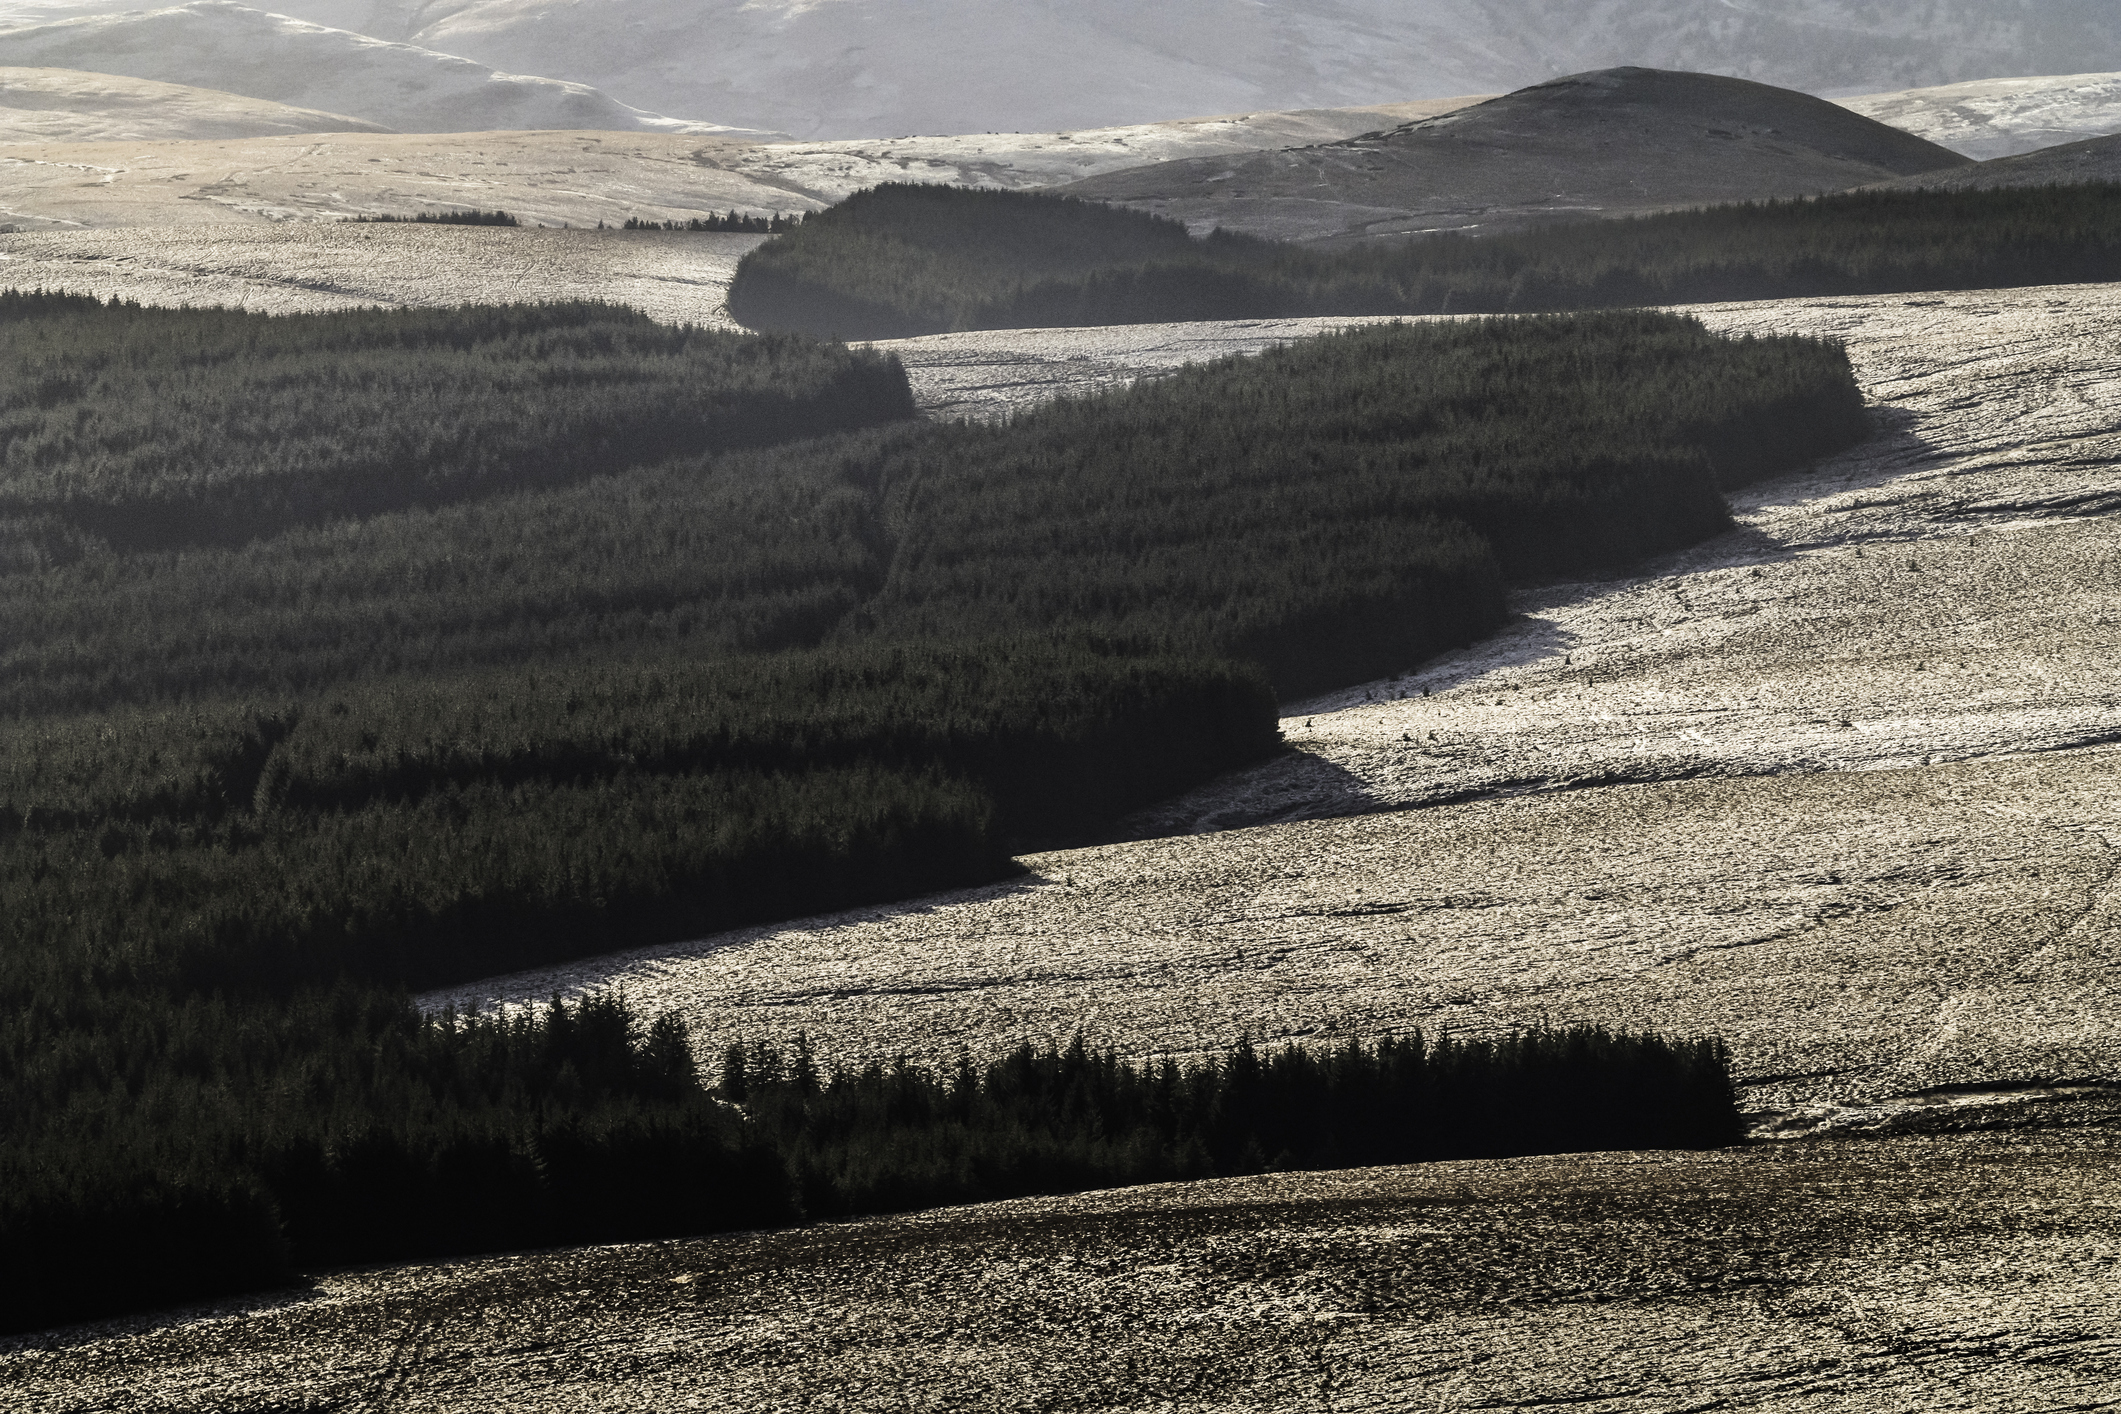 The planting of commercial forestry on hill land in the south of Scotland has been controversial.